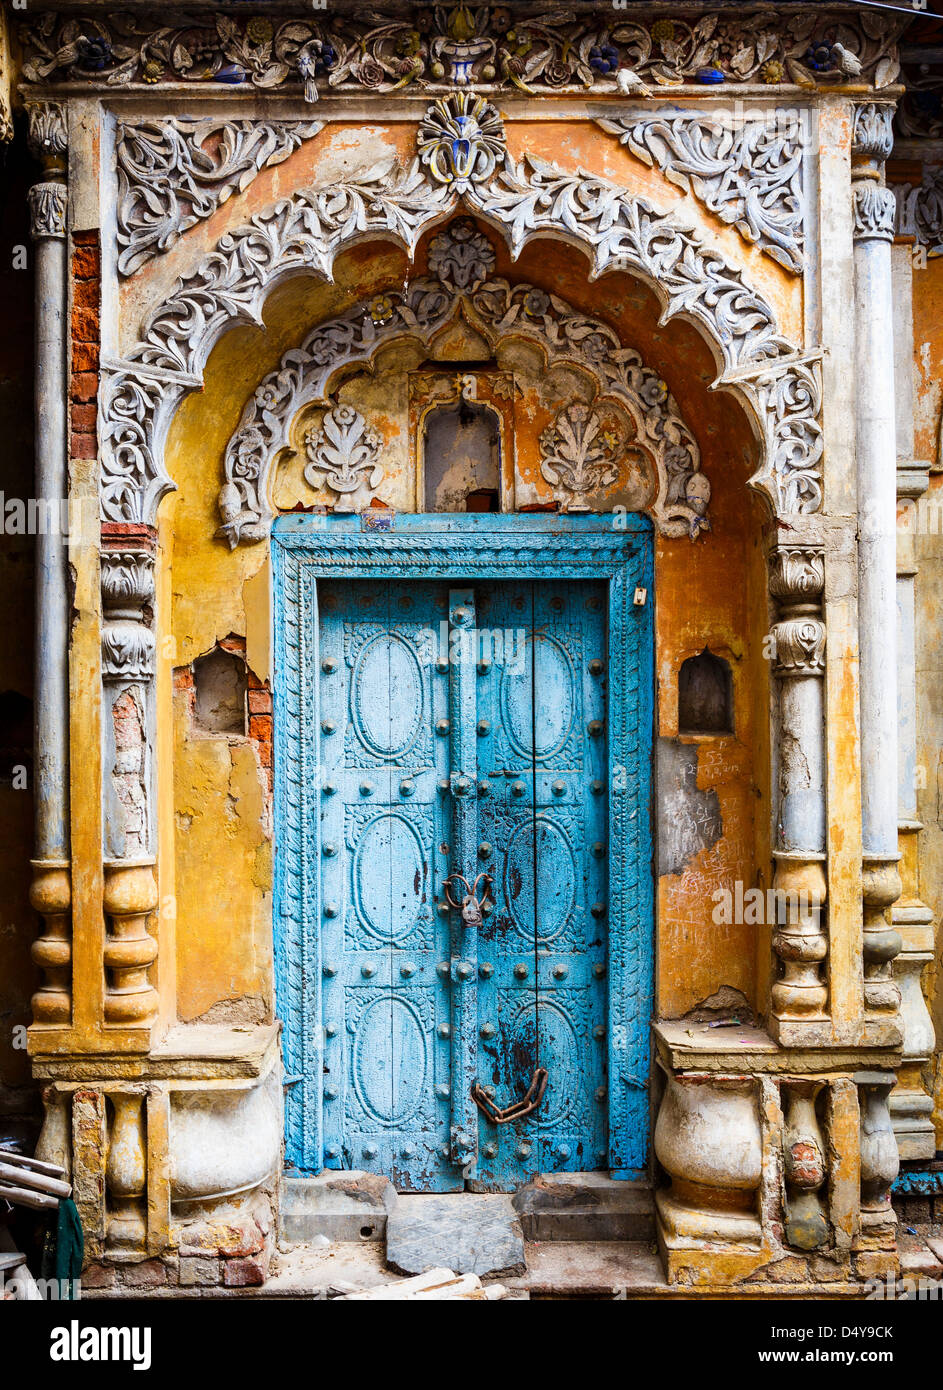 A Beautiful Old Door Of A Palace In The Old Town Of